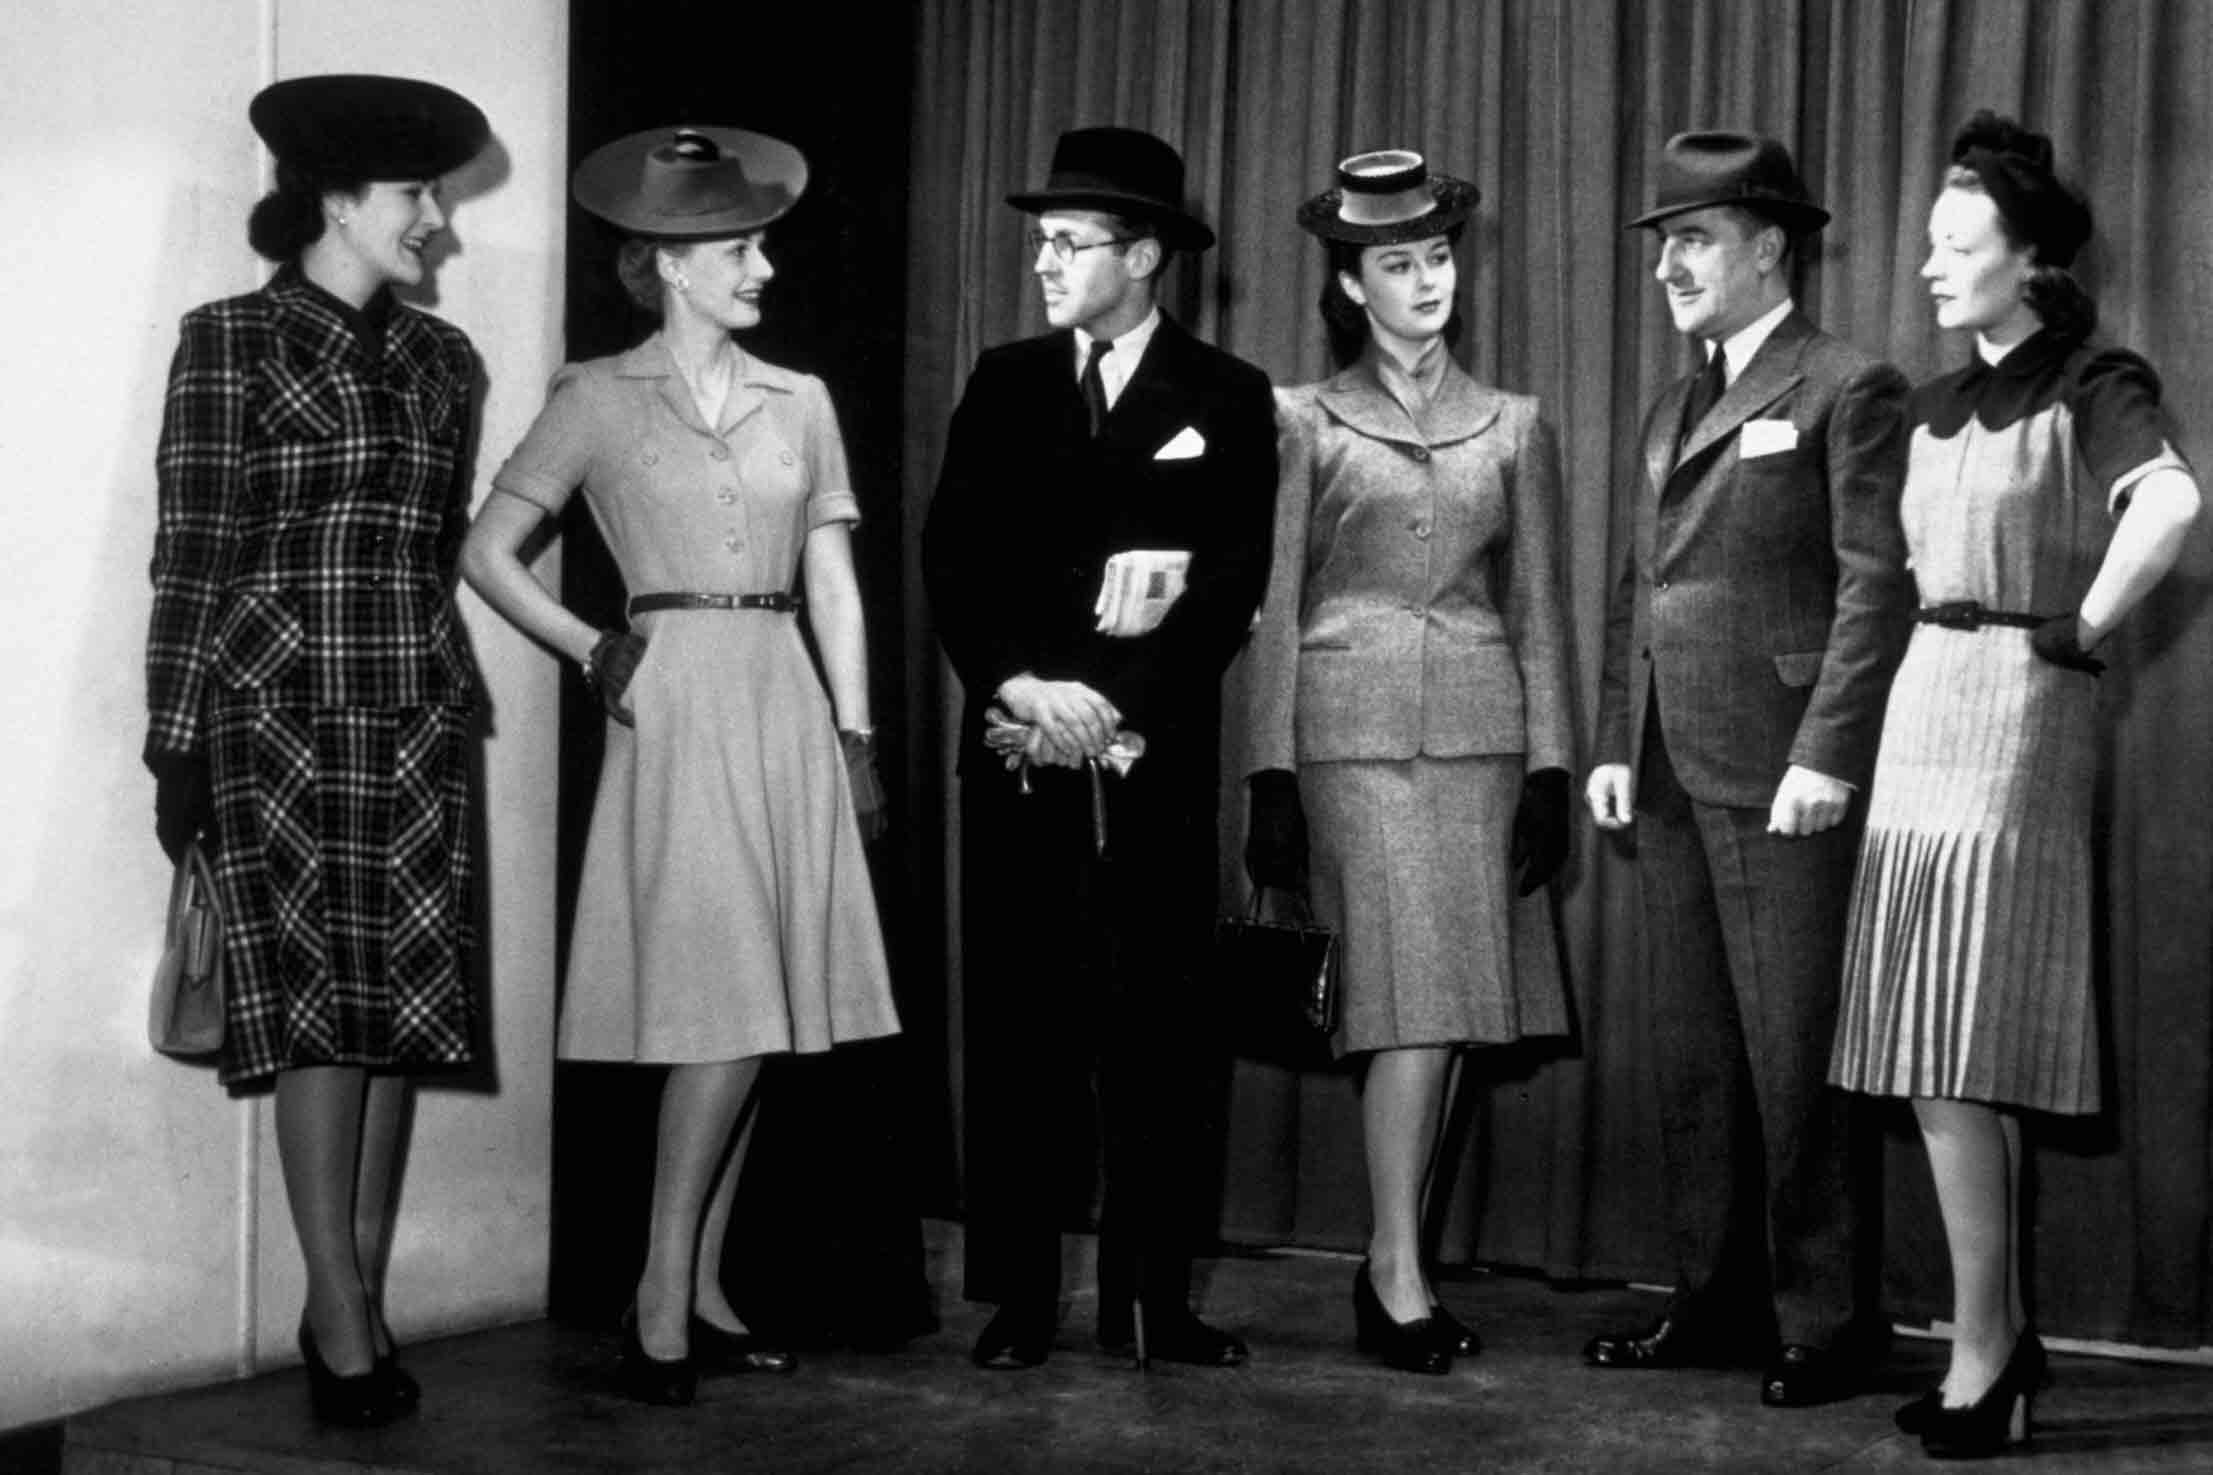 1940s victory suits